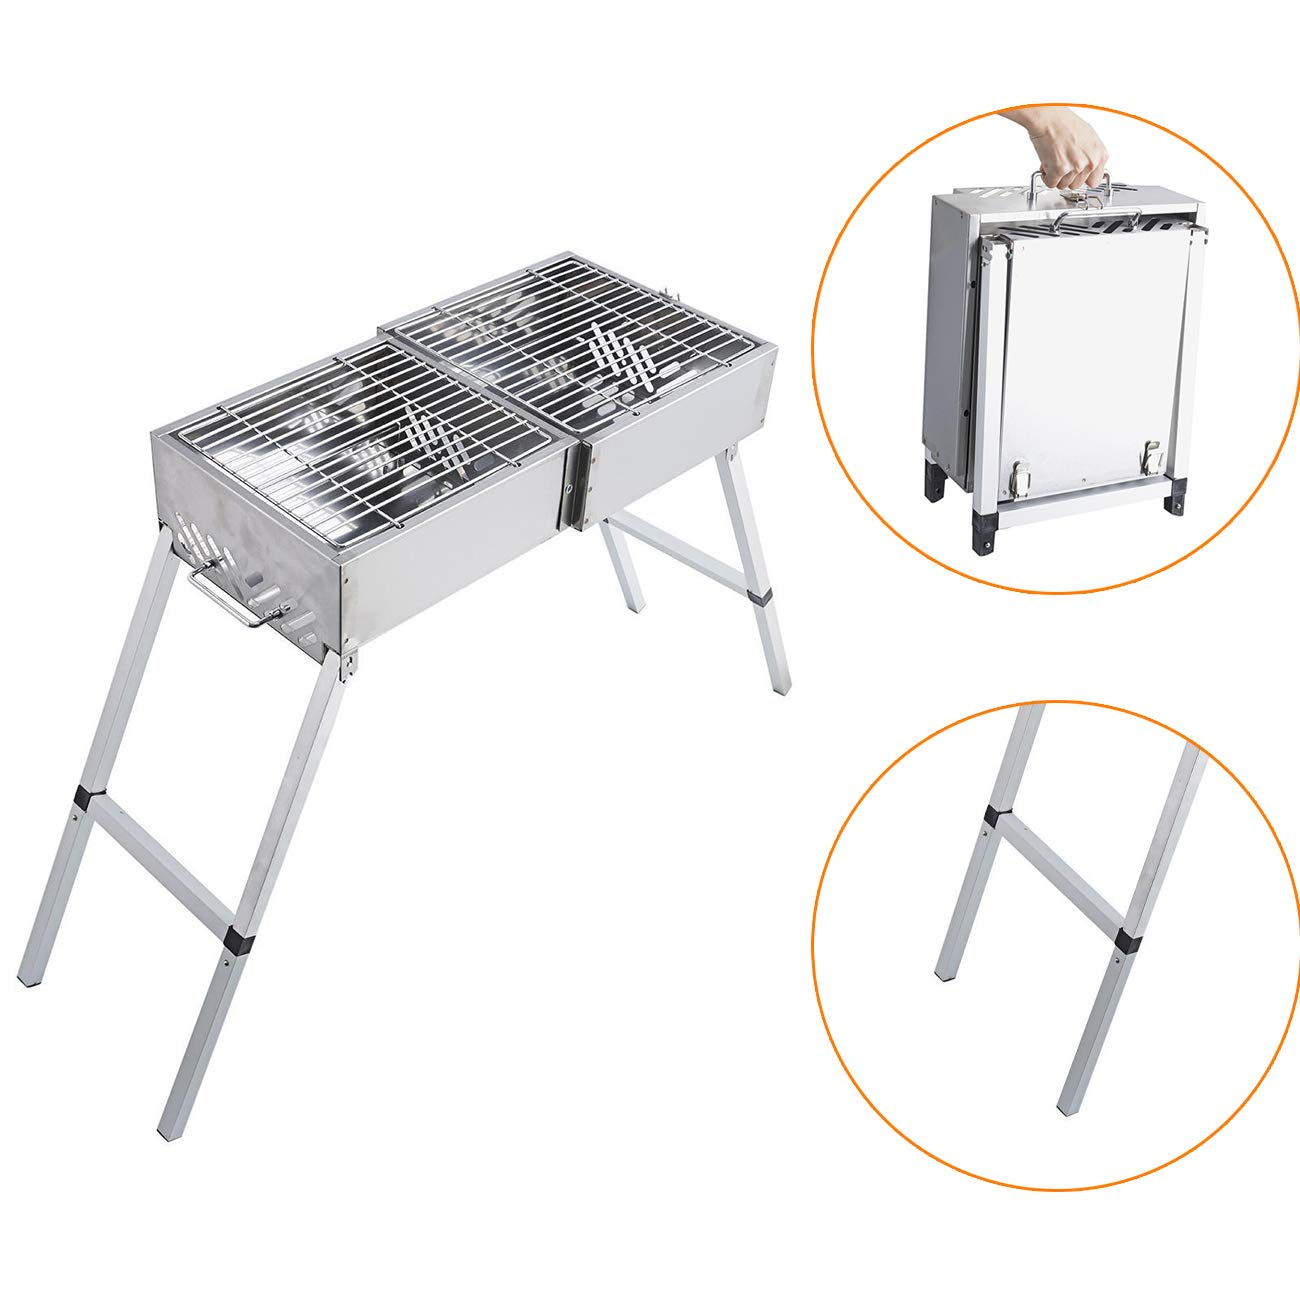 BEAMNOVA Portable Barbeque Grill with Handle & Feet Extensions Foldable Stainless Steel Mesh for Outdoor Camping Vegetables Burgers Fish Shrimp Steaks